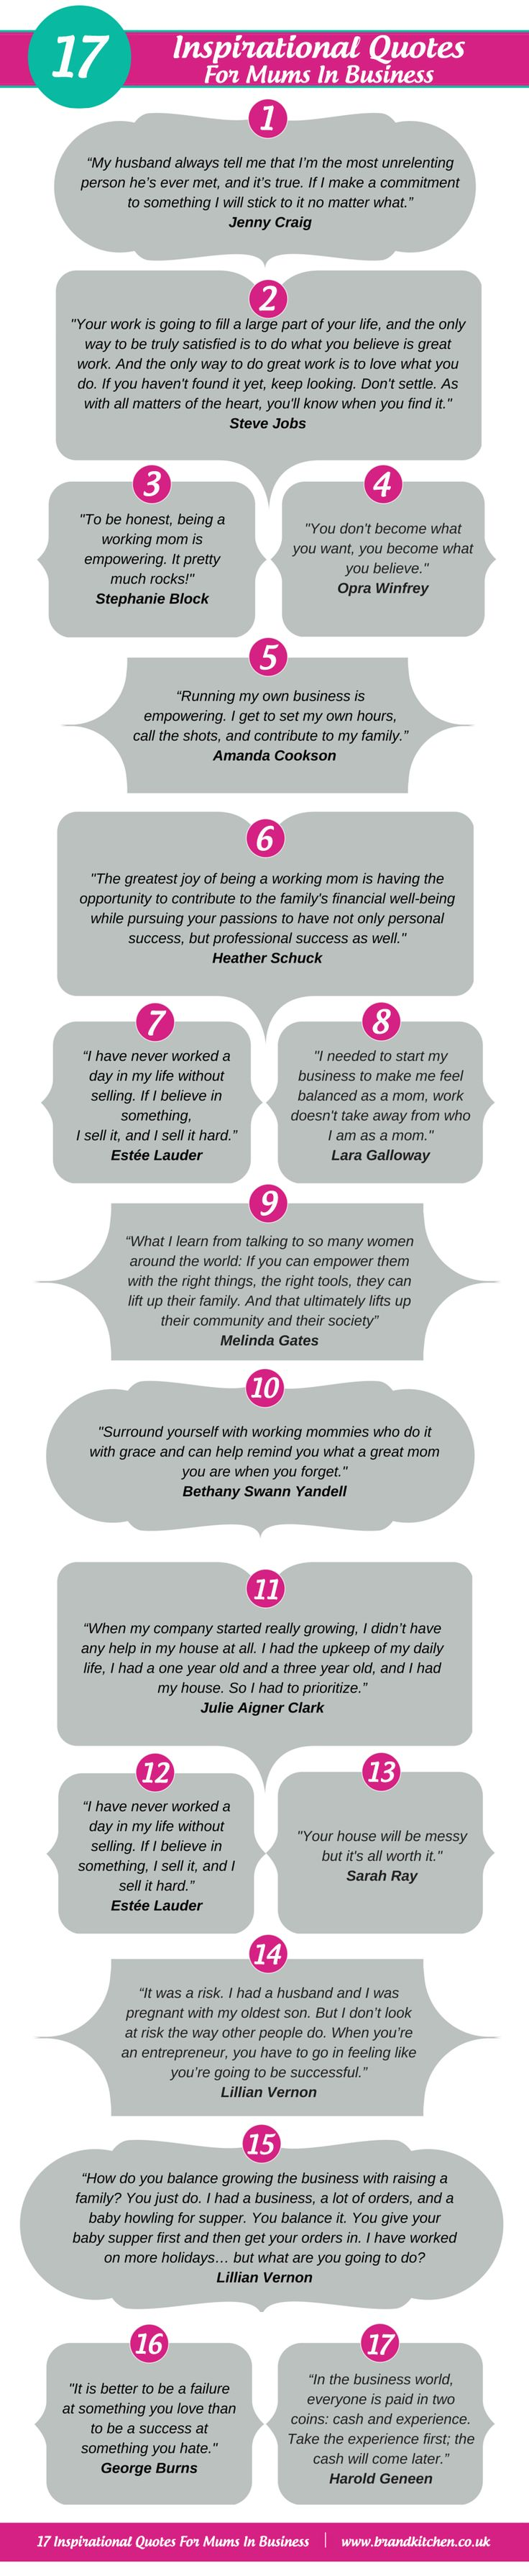 17 Inspirational Quotes For Mums In Business #inforgraphic #quotes #inspirational #business #mumpreneurs